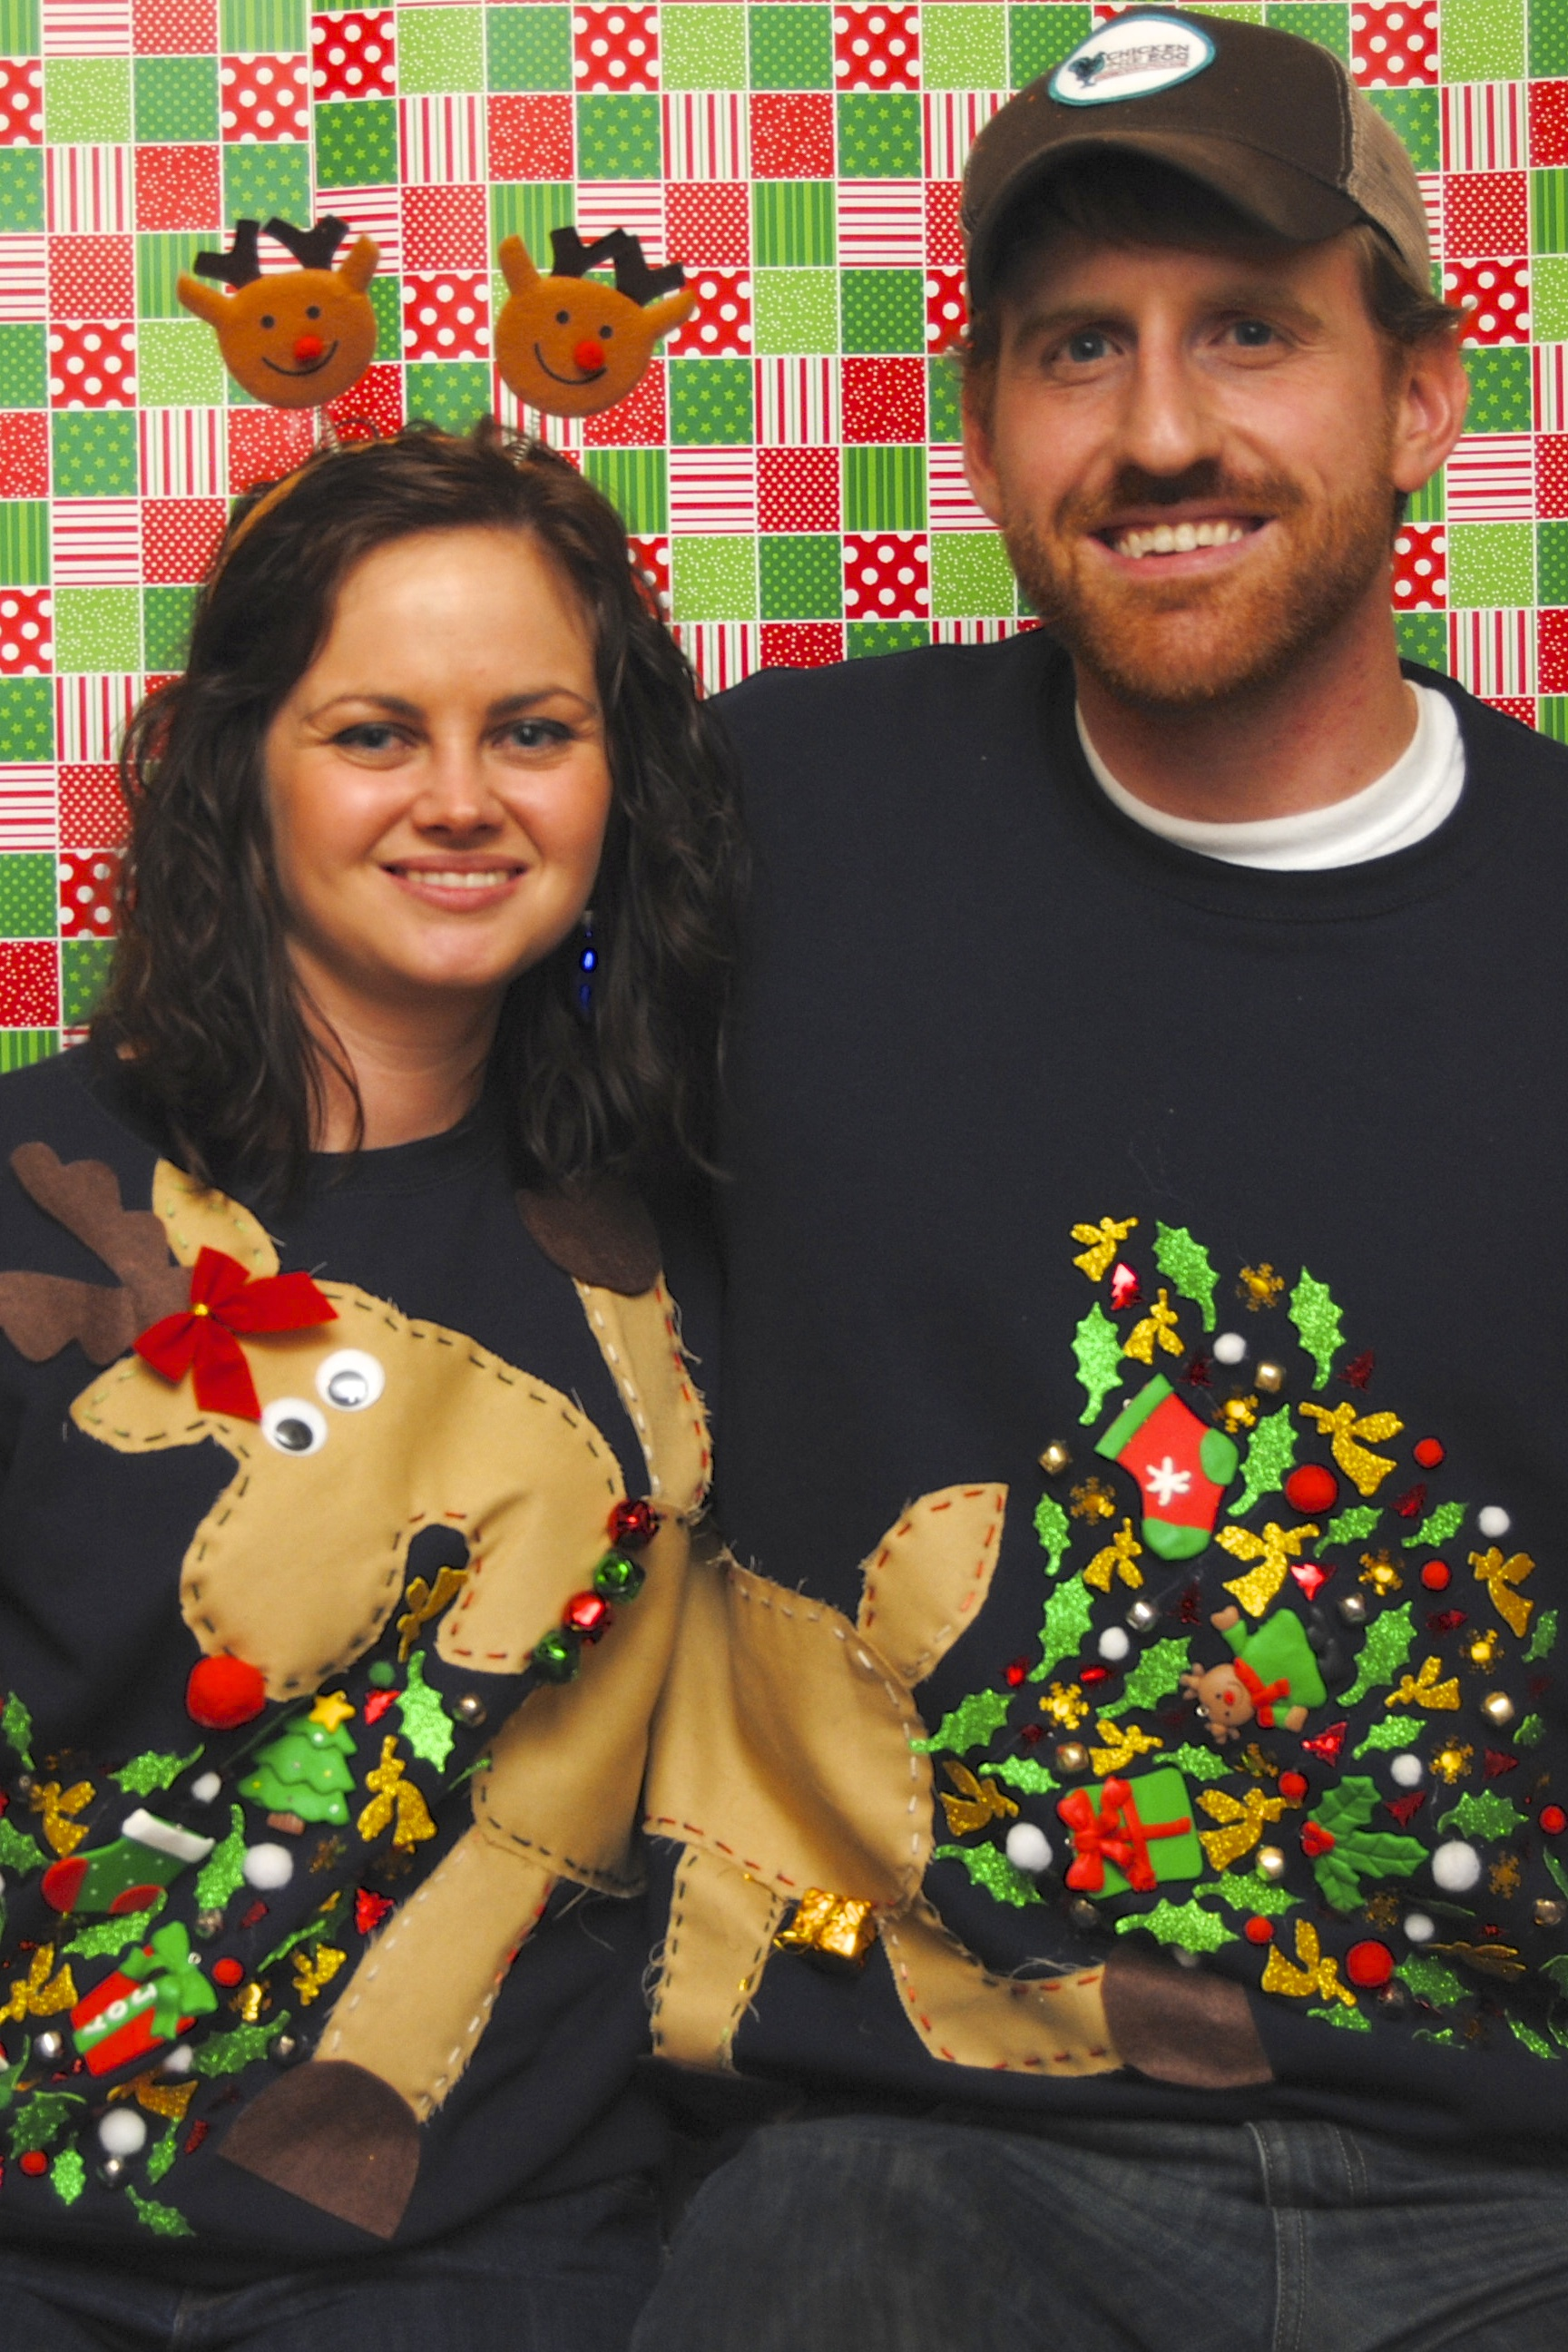 Christmas Sweaters For Couples.Funny Photo Of The Day For Wednesday 24 December 2014 From